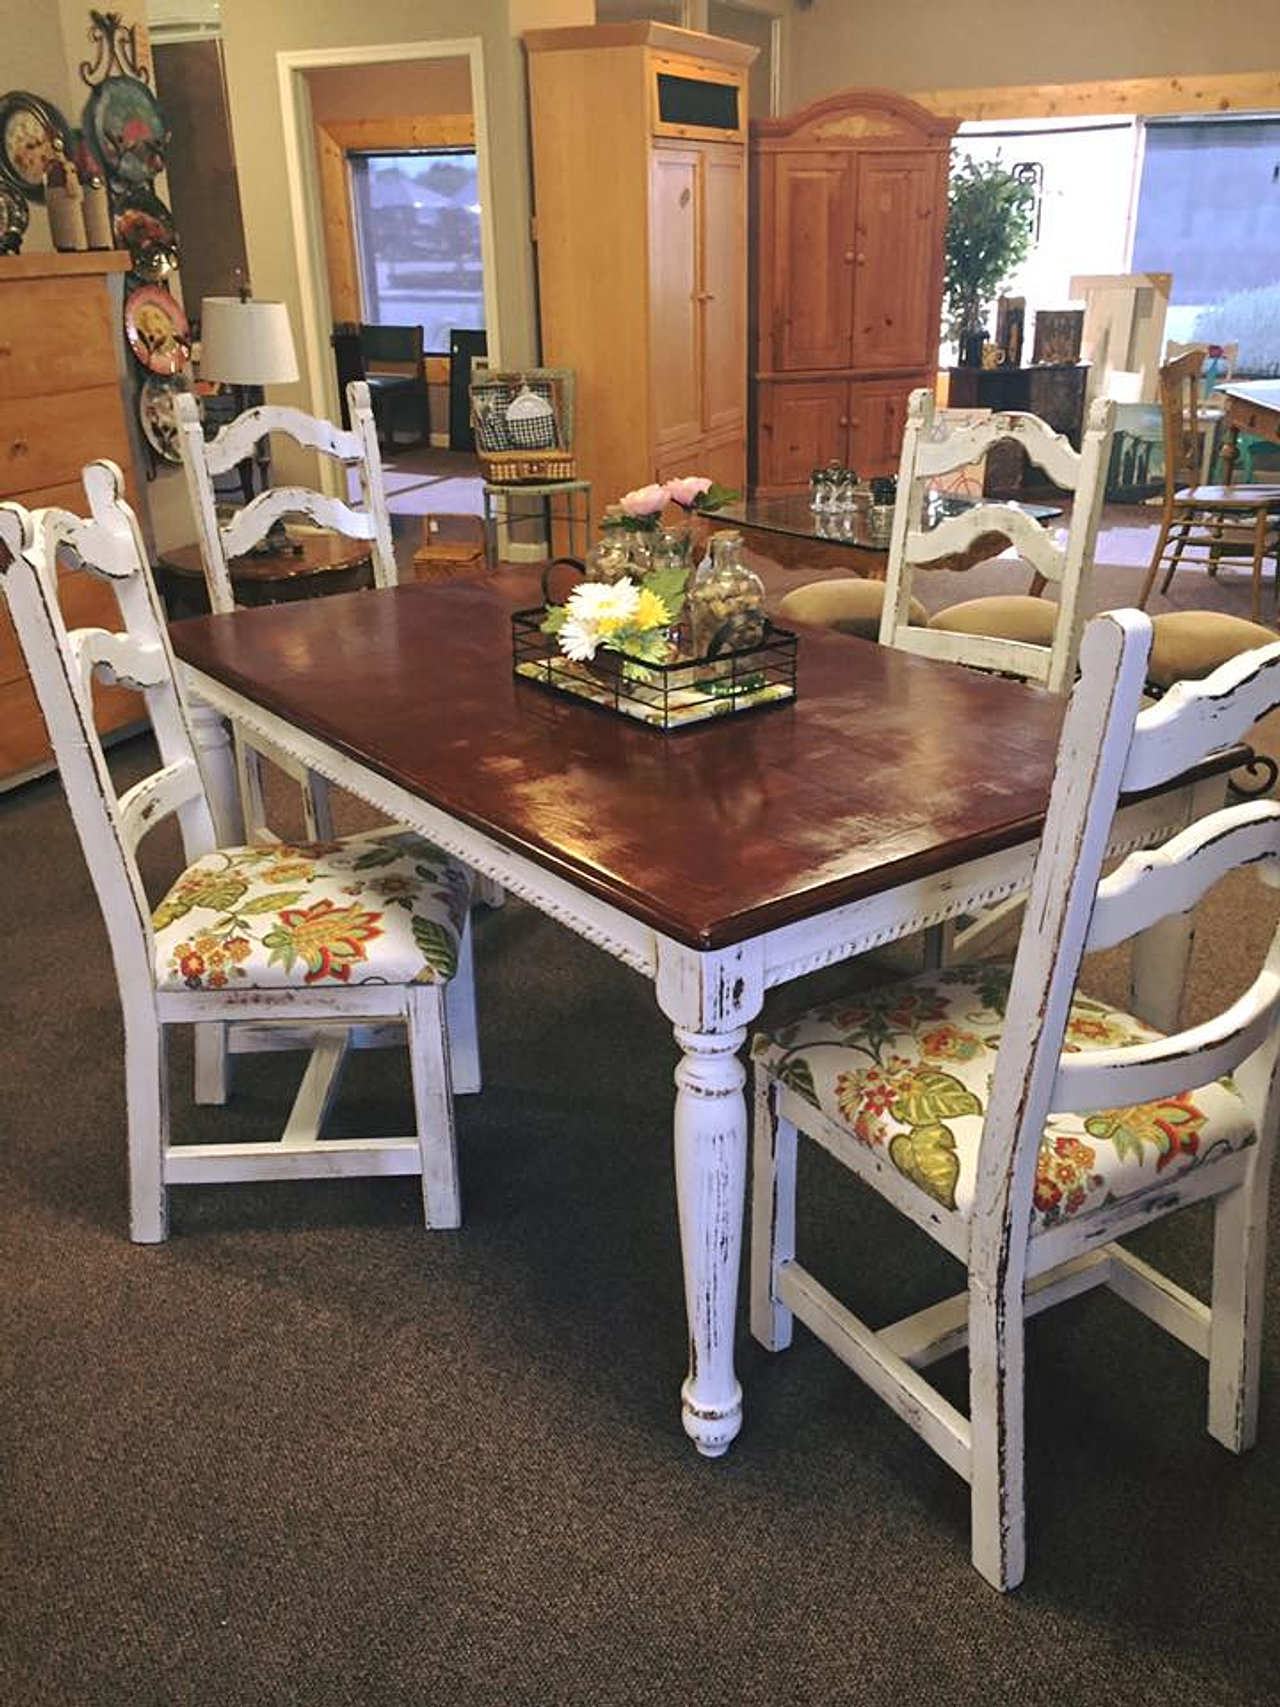 A Collection Of Furniture Pieces That We Have Repurposed And Restored.